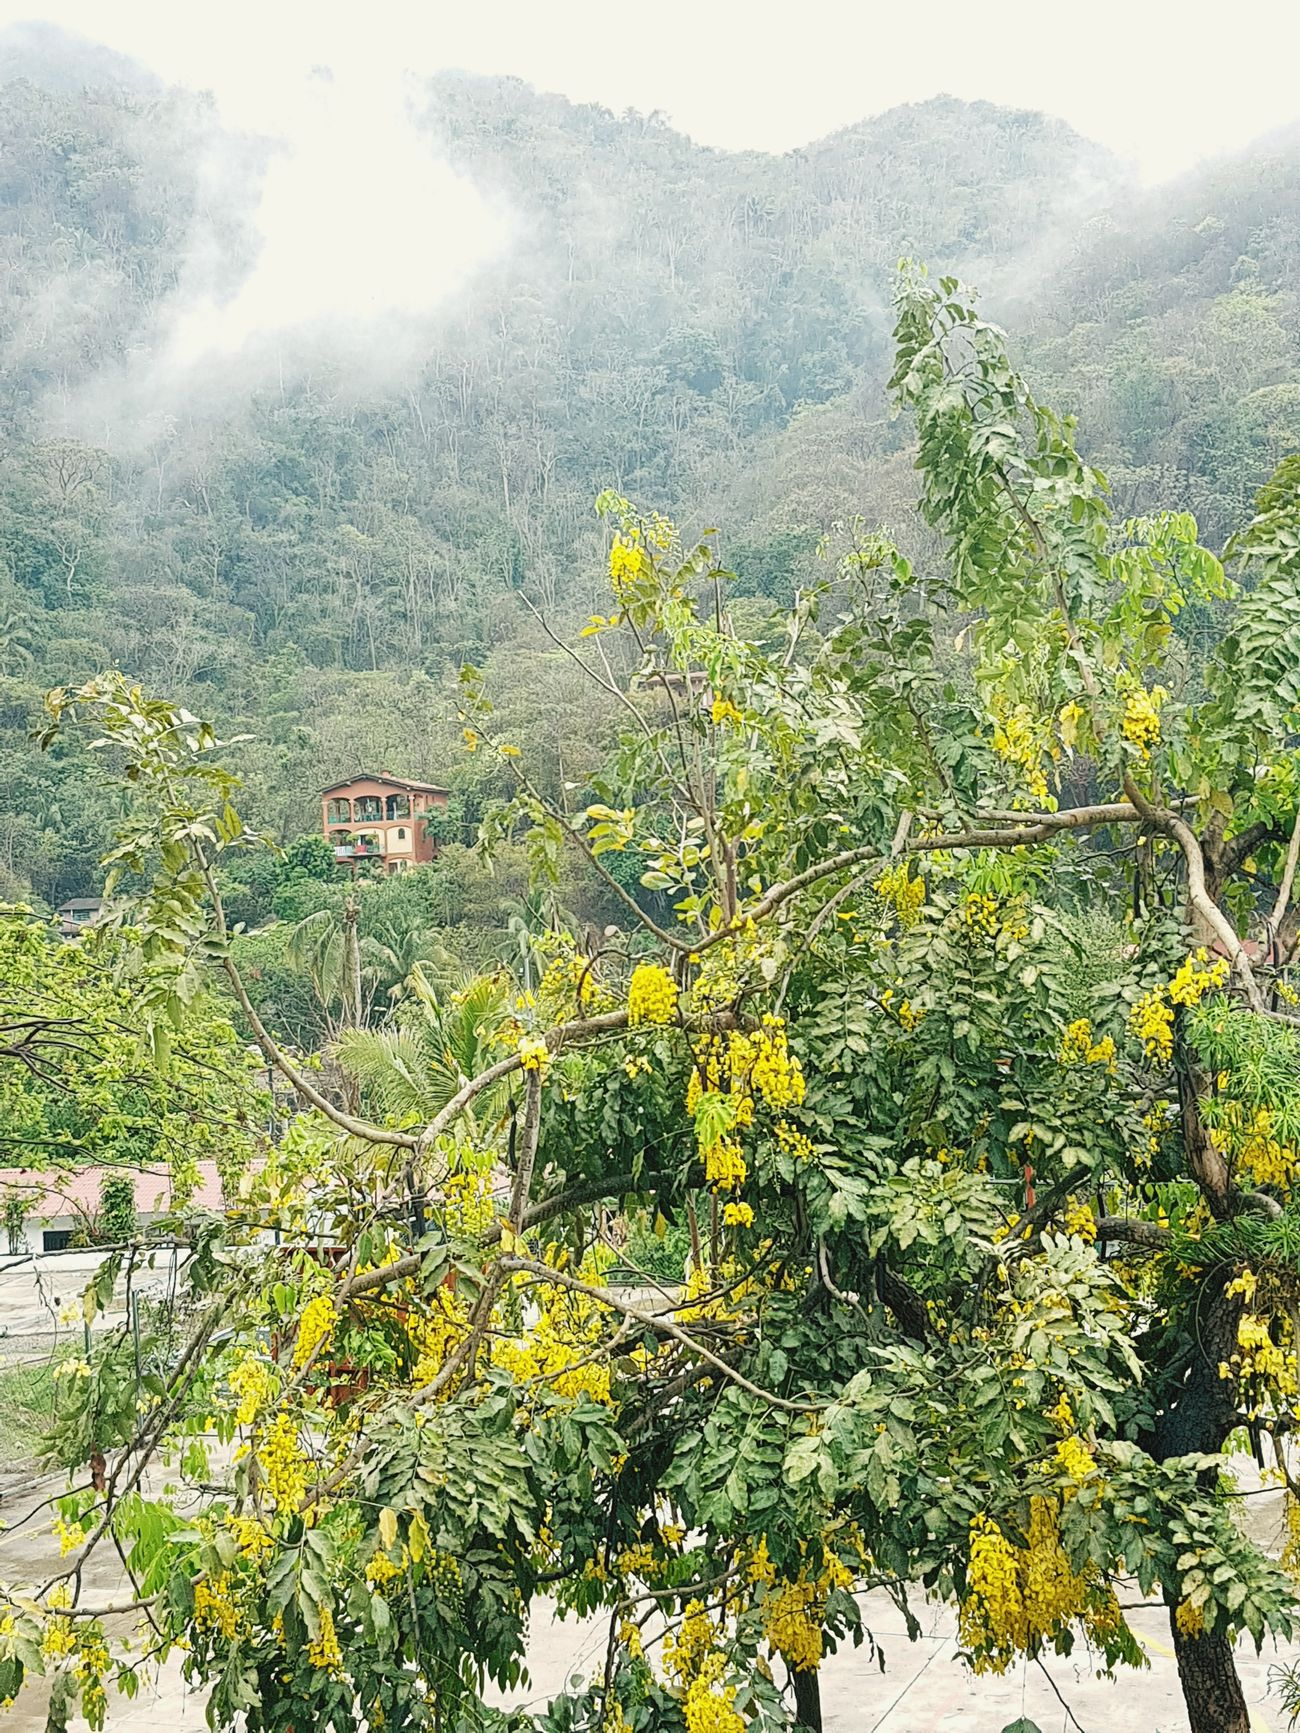 House Nature Mountain Outdoors Beauty In Nature Day Scenics Tree Water Sky Freshness Growth Grass Close-up Yellow Vallarta,Mexico Green Nature